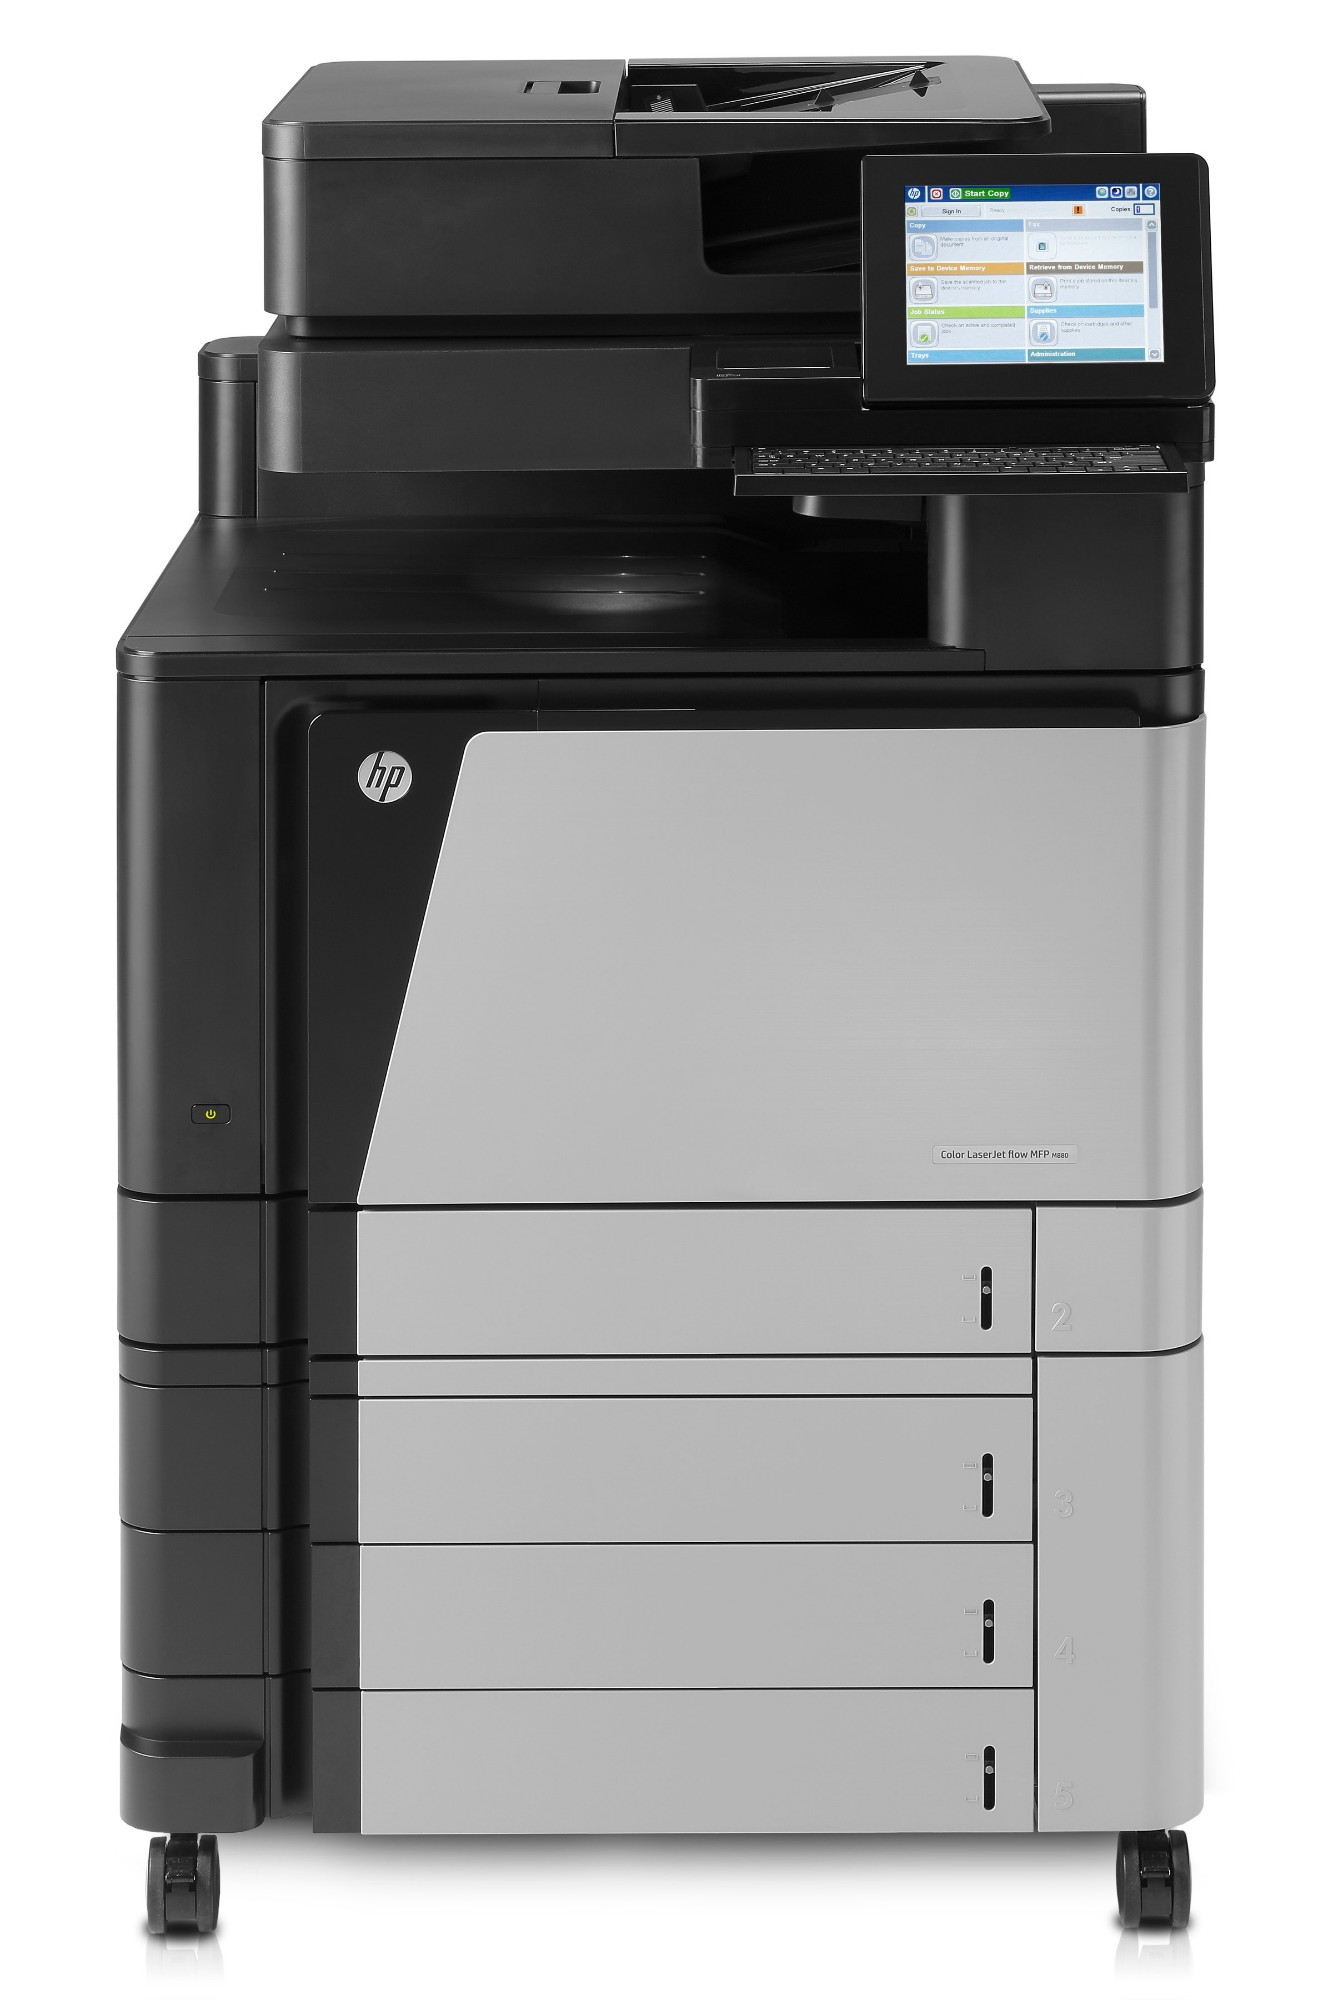 HP LaserJet Enterprise flow M880z 1200 x 1200DPI Laser A3 46ppm